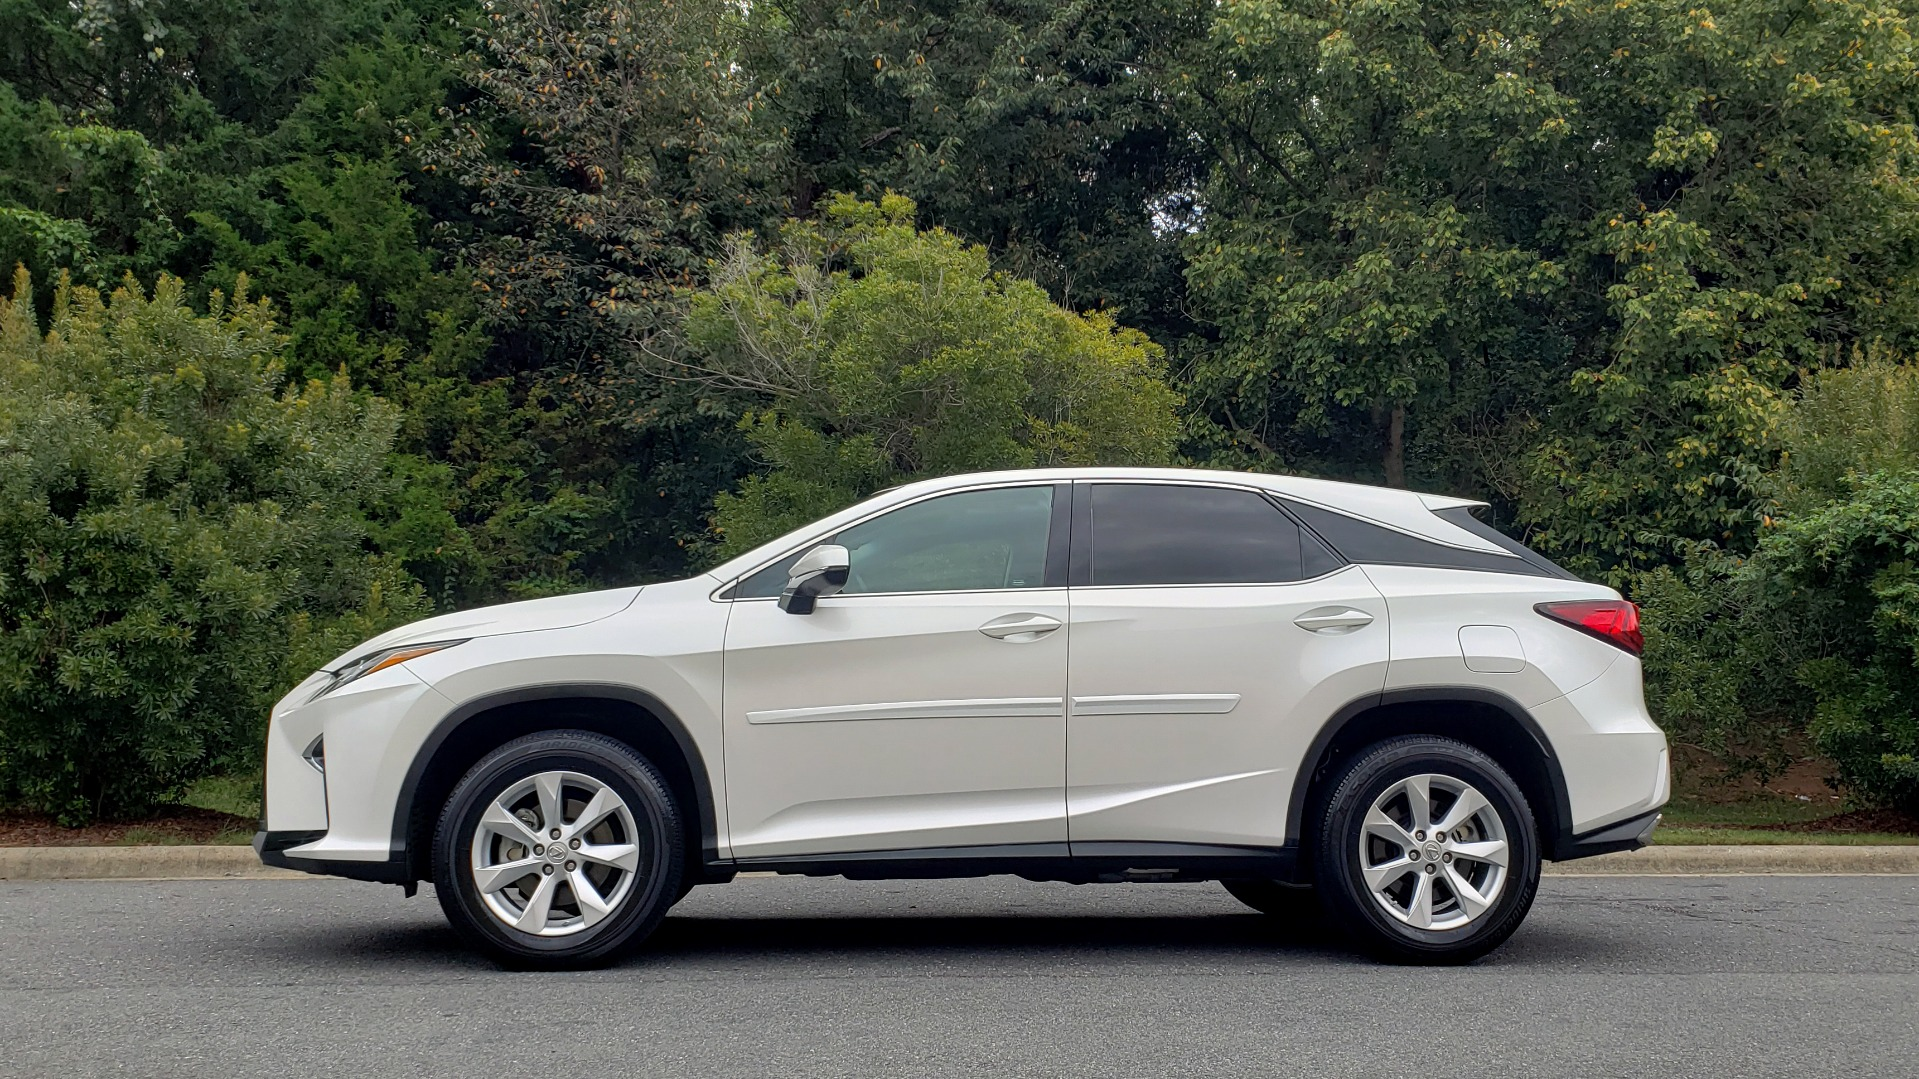 Used 2016 Lexus RX 350 FWD / 4-DR / 3.5L V6 / 8-SPD AUTO / LEATHER / REARVIEW for sale Sold at Formula Imports in Charlotte NC 28227 5